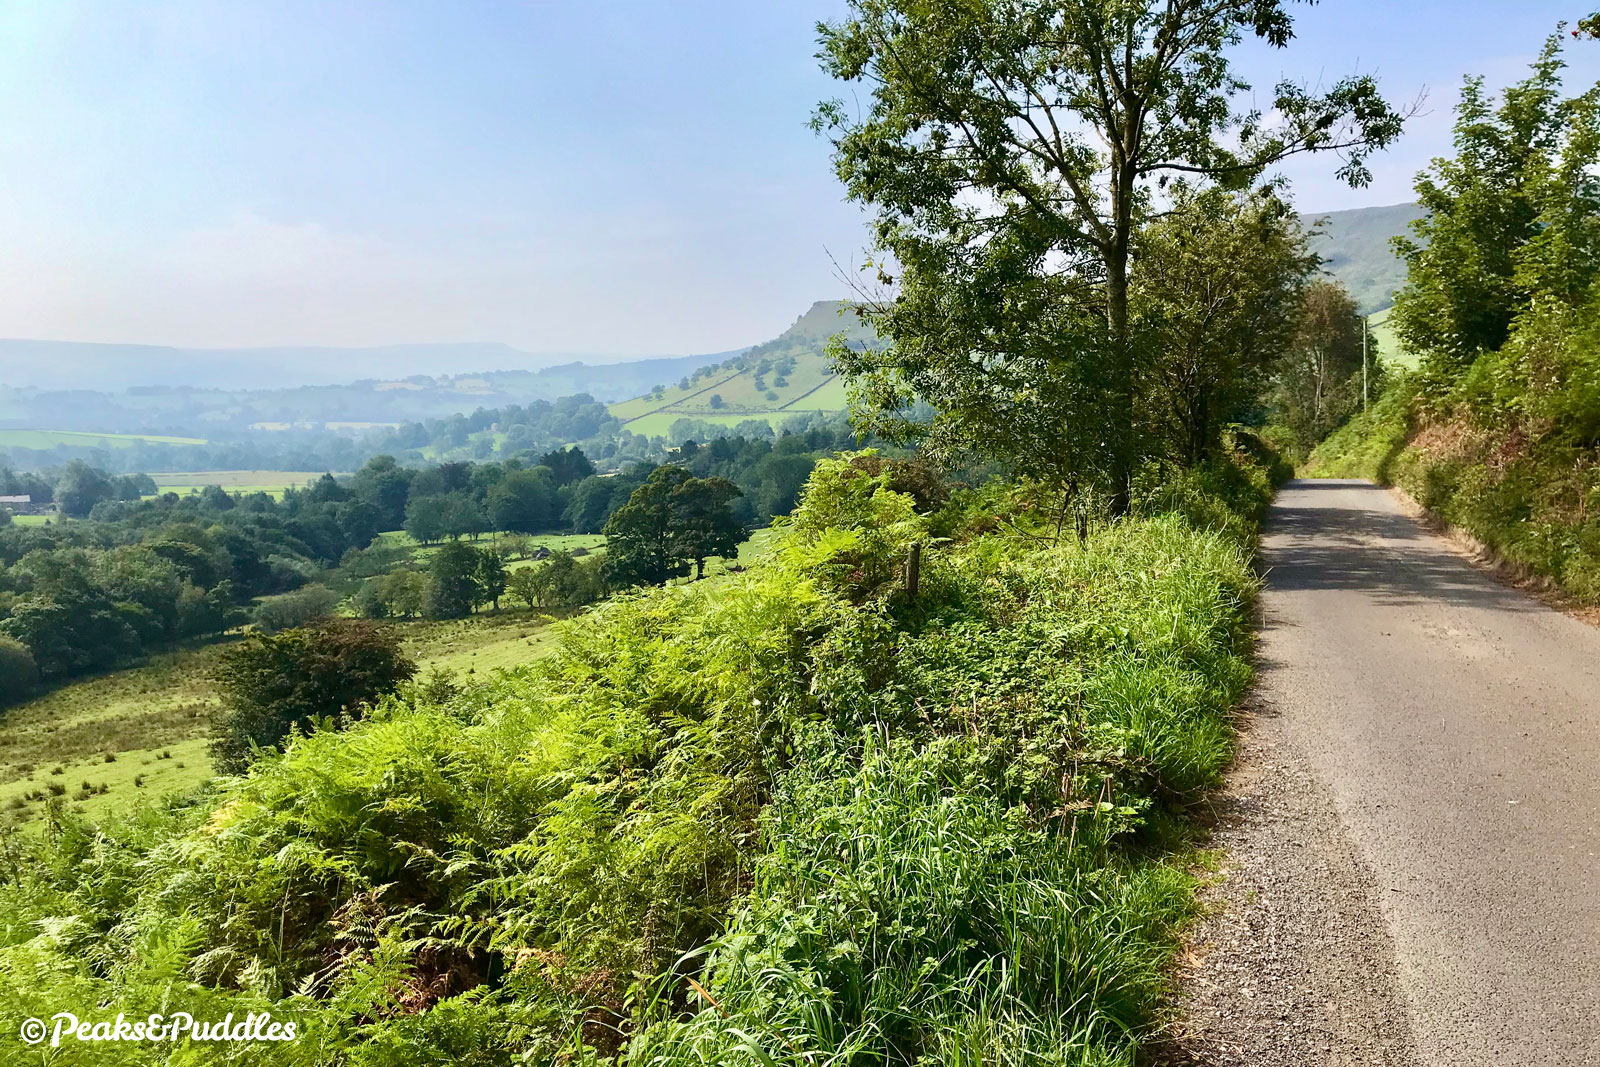 Cracken Edge is just one side of Chinley Churn, but now takes centre stage from Maynestone Road, one of the High Peak's best cycling descents.